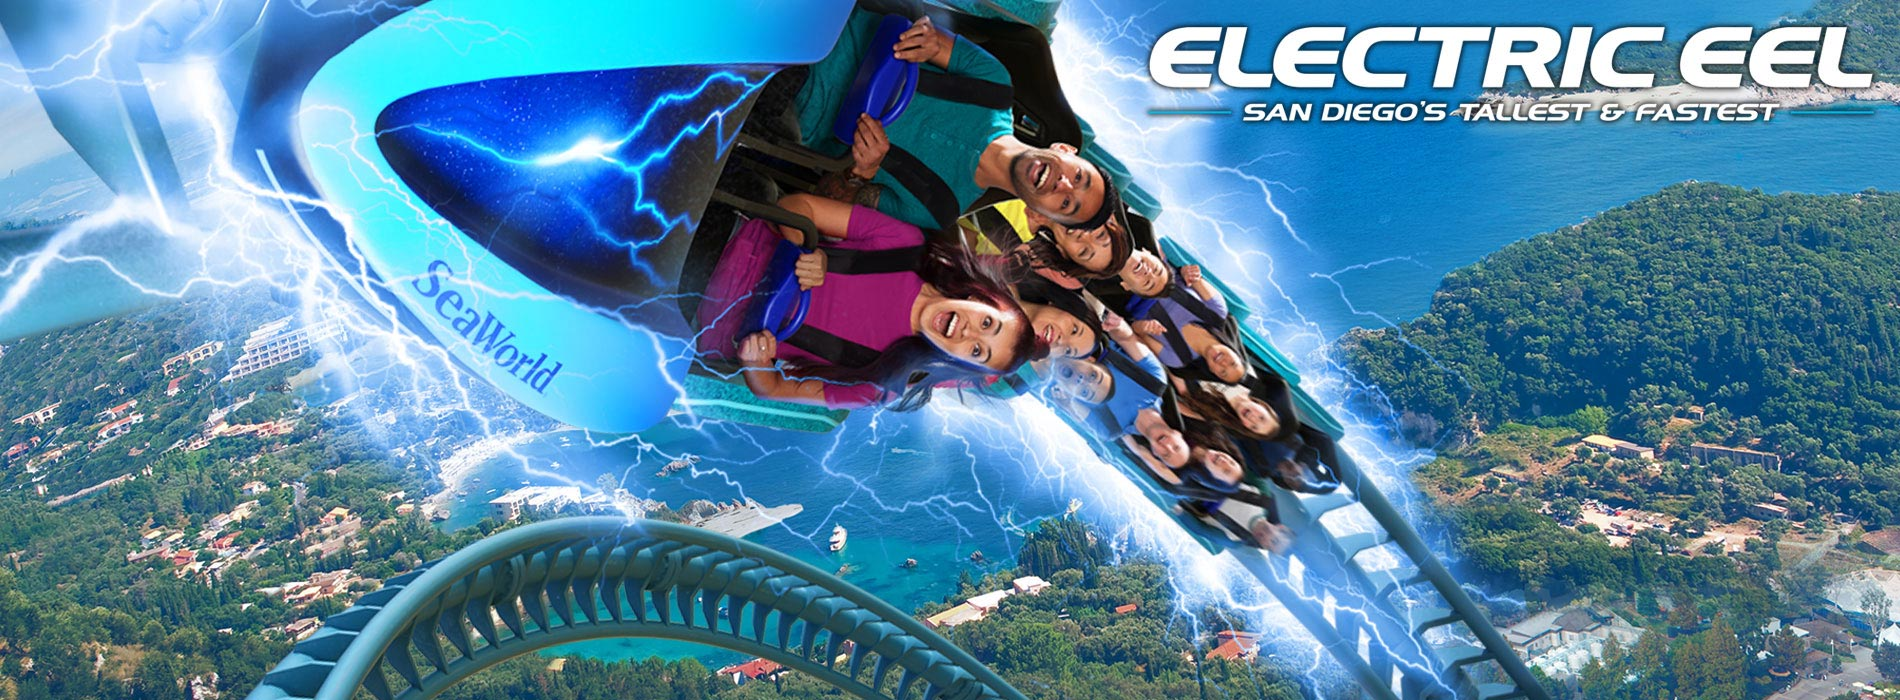 Electric Eel- San Diego's Tallest and Fastest Roller Coaster